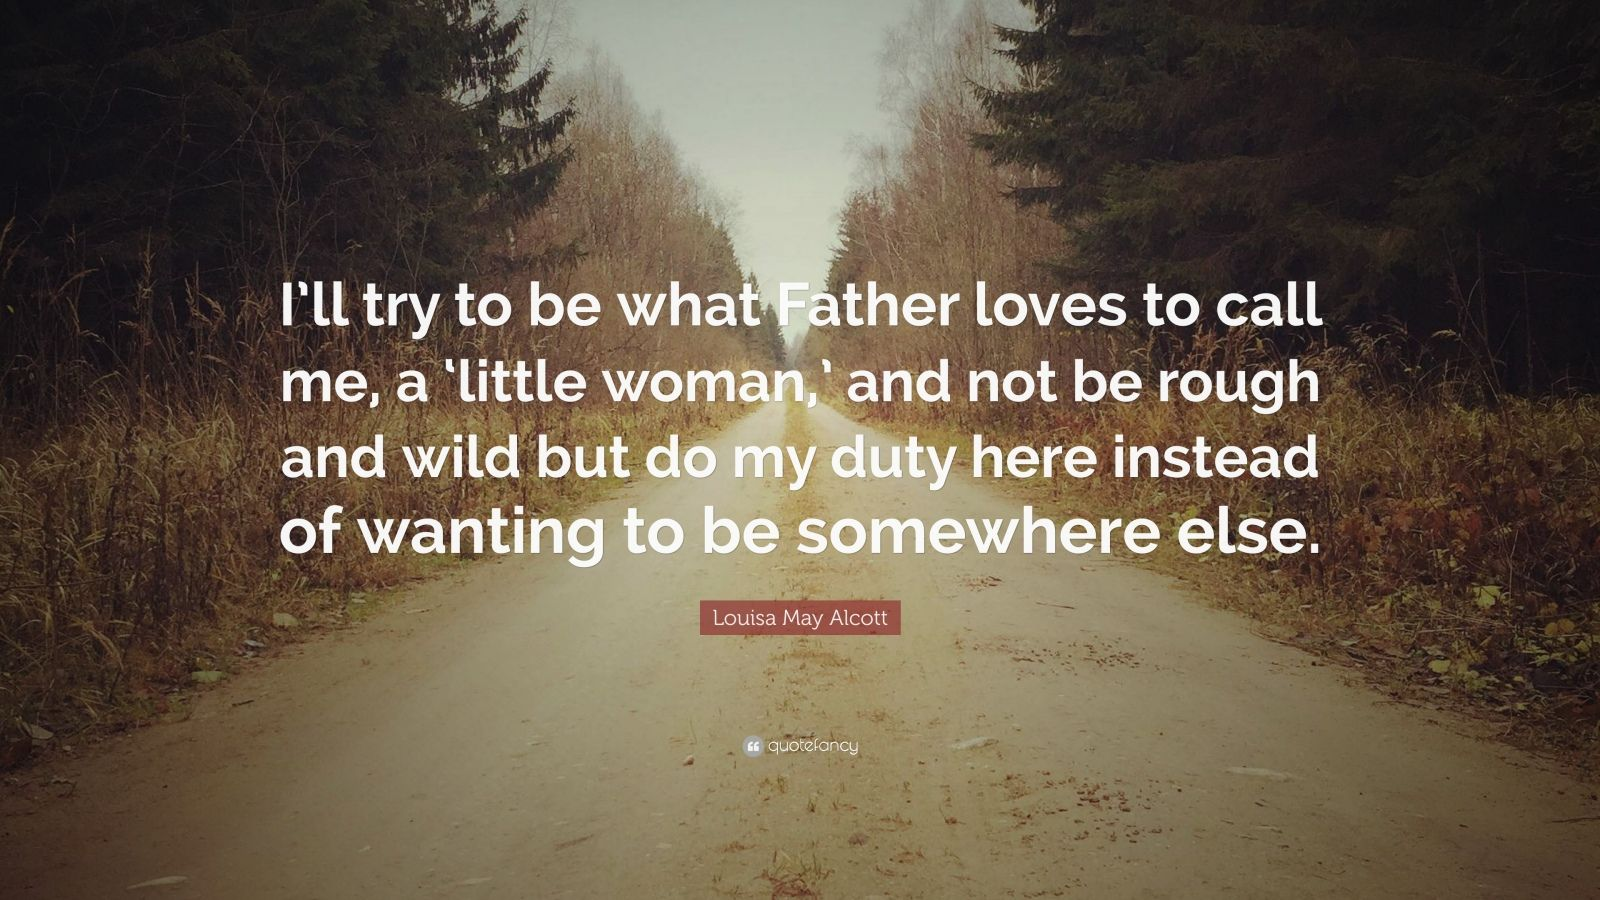 """Louisa May Alcott Quote: """"I'll try to be what Father loves to call me, a 'little woman,' and not be rough and wild but do my duty here instead of wanting to be somewhere else."""""""